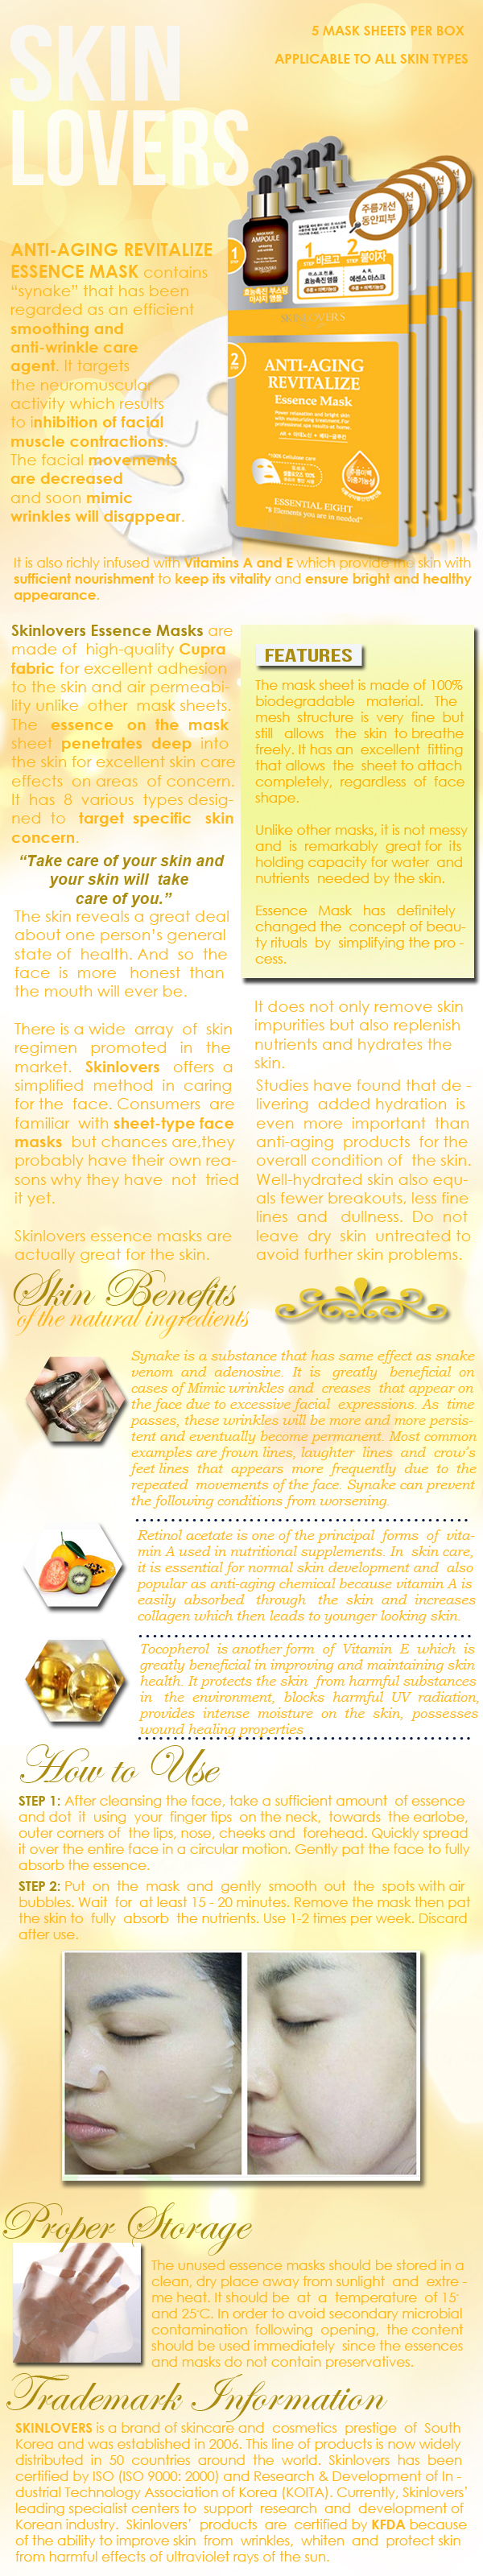 Skinlovers Anti-Aging Revitalize Essence Mask Product Information